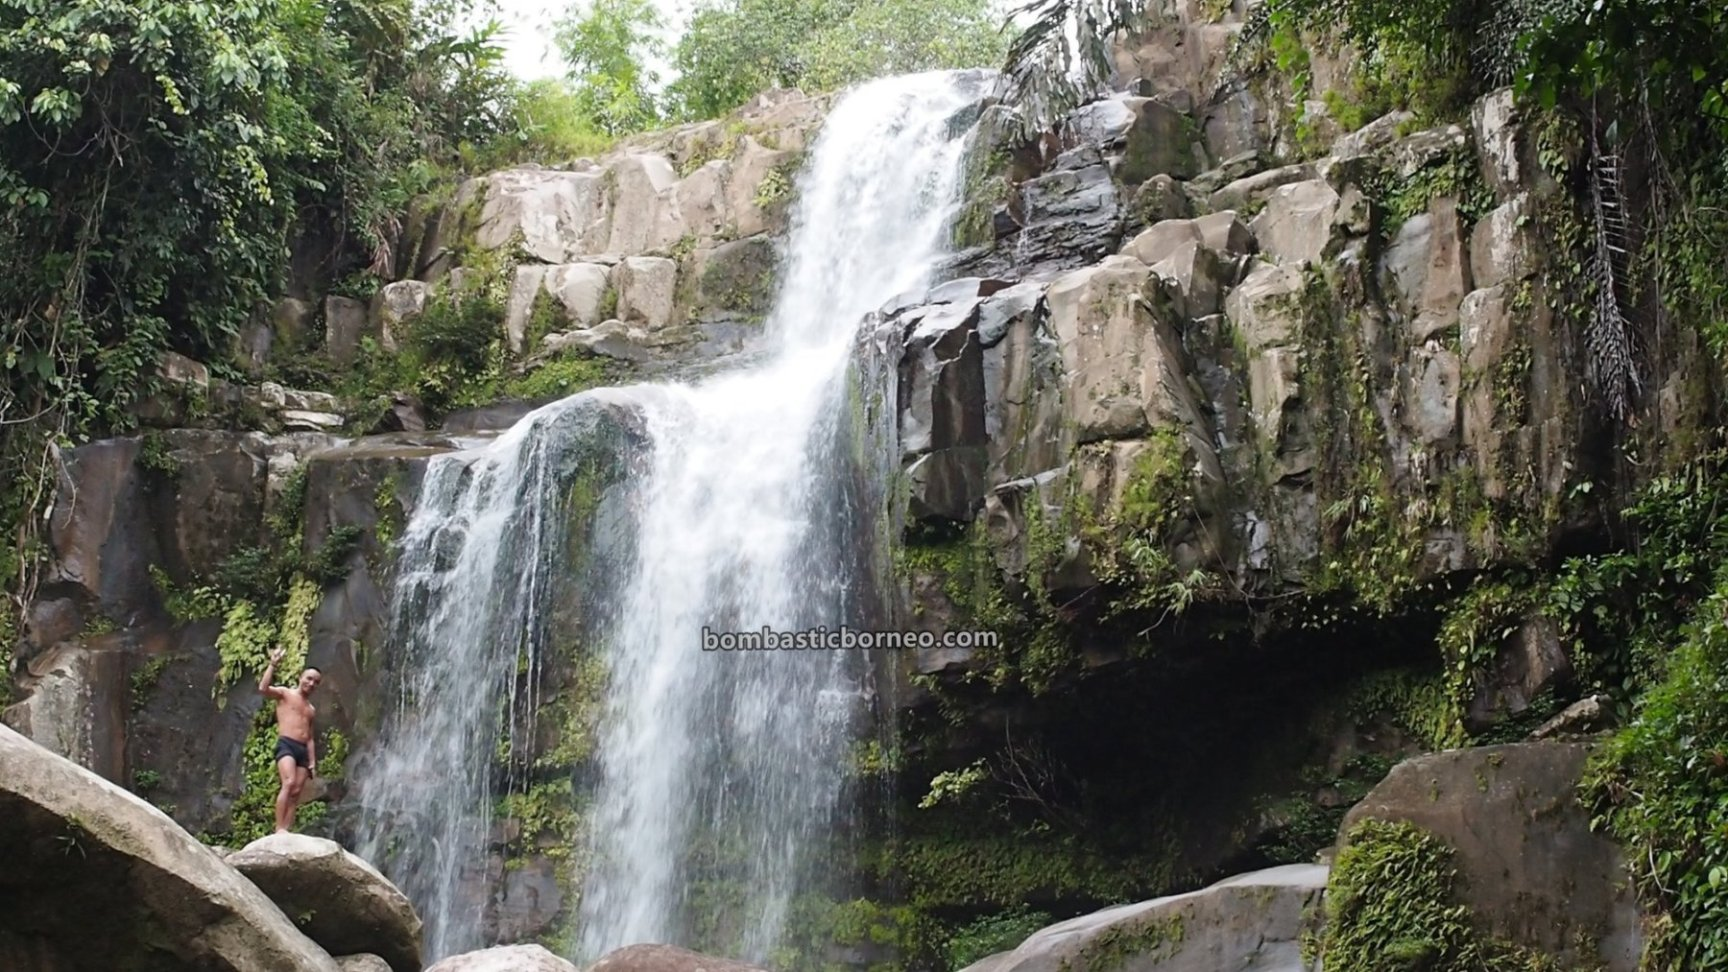 waterfall, air terjun, adventure, nature, outdoor, exploration, backpackers, destination, West Kalimantan, Tourism, wisata alam, Trans Borneo, 探索婆罗洲游踪, 西加里曼丹瀑布, 孟加映达雅部落